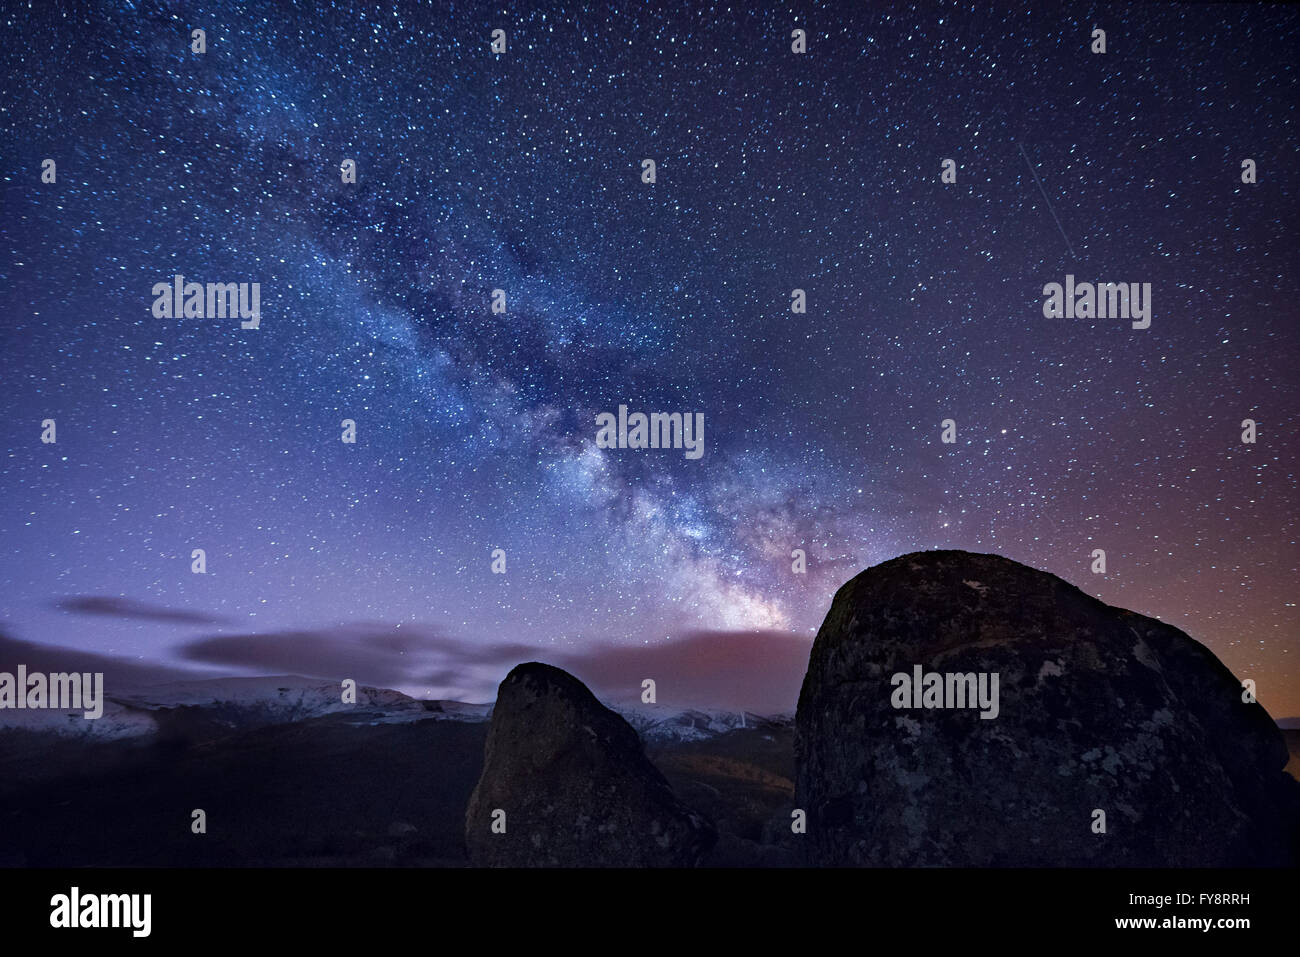 Milky way over ancient granite rocks - Stock Image